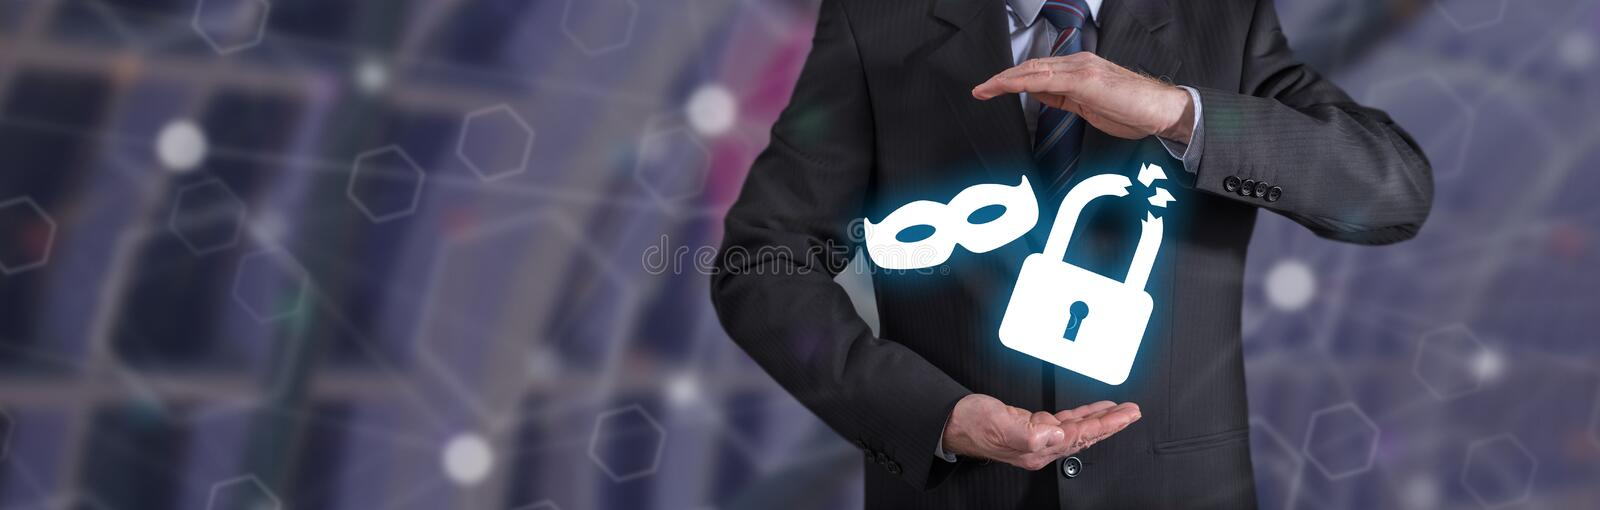 Concept of theft insurance. Theft insurance concept with businessman in a protective gesture stock photography